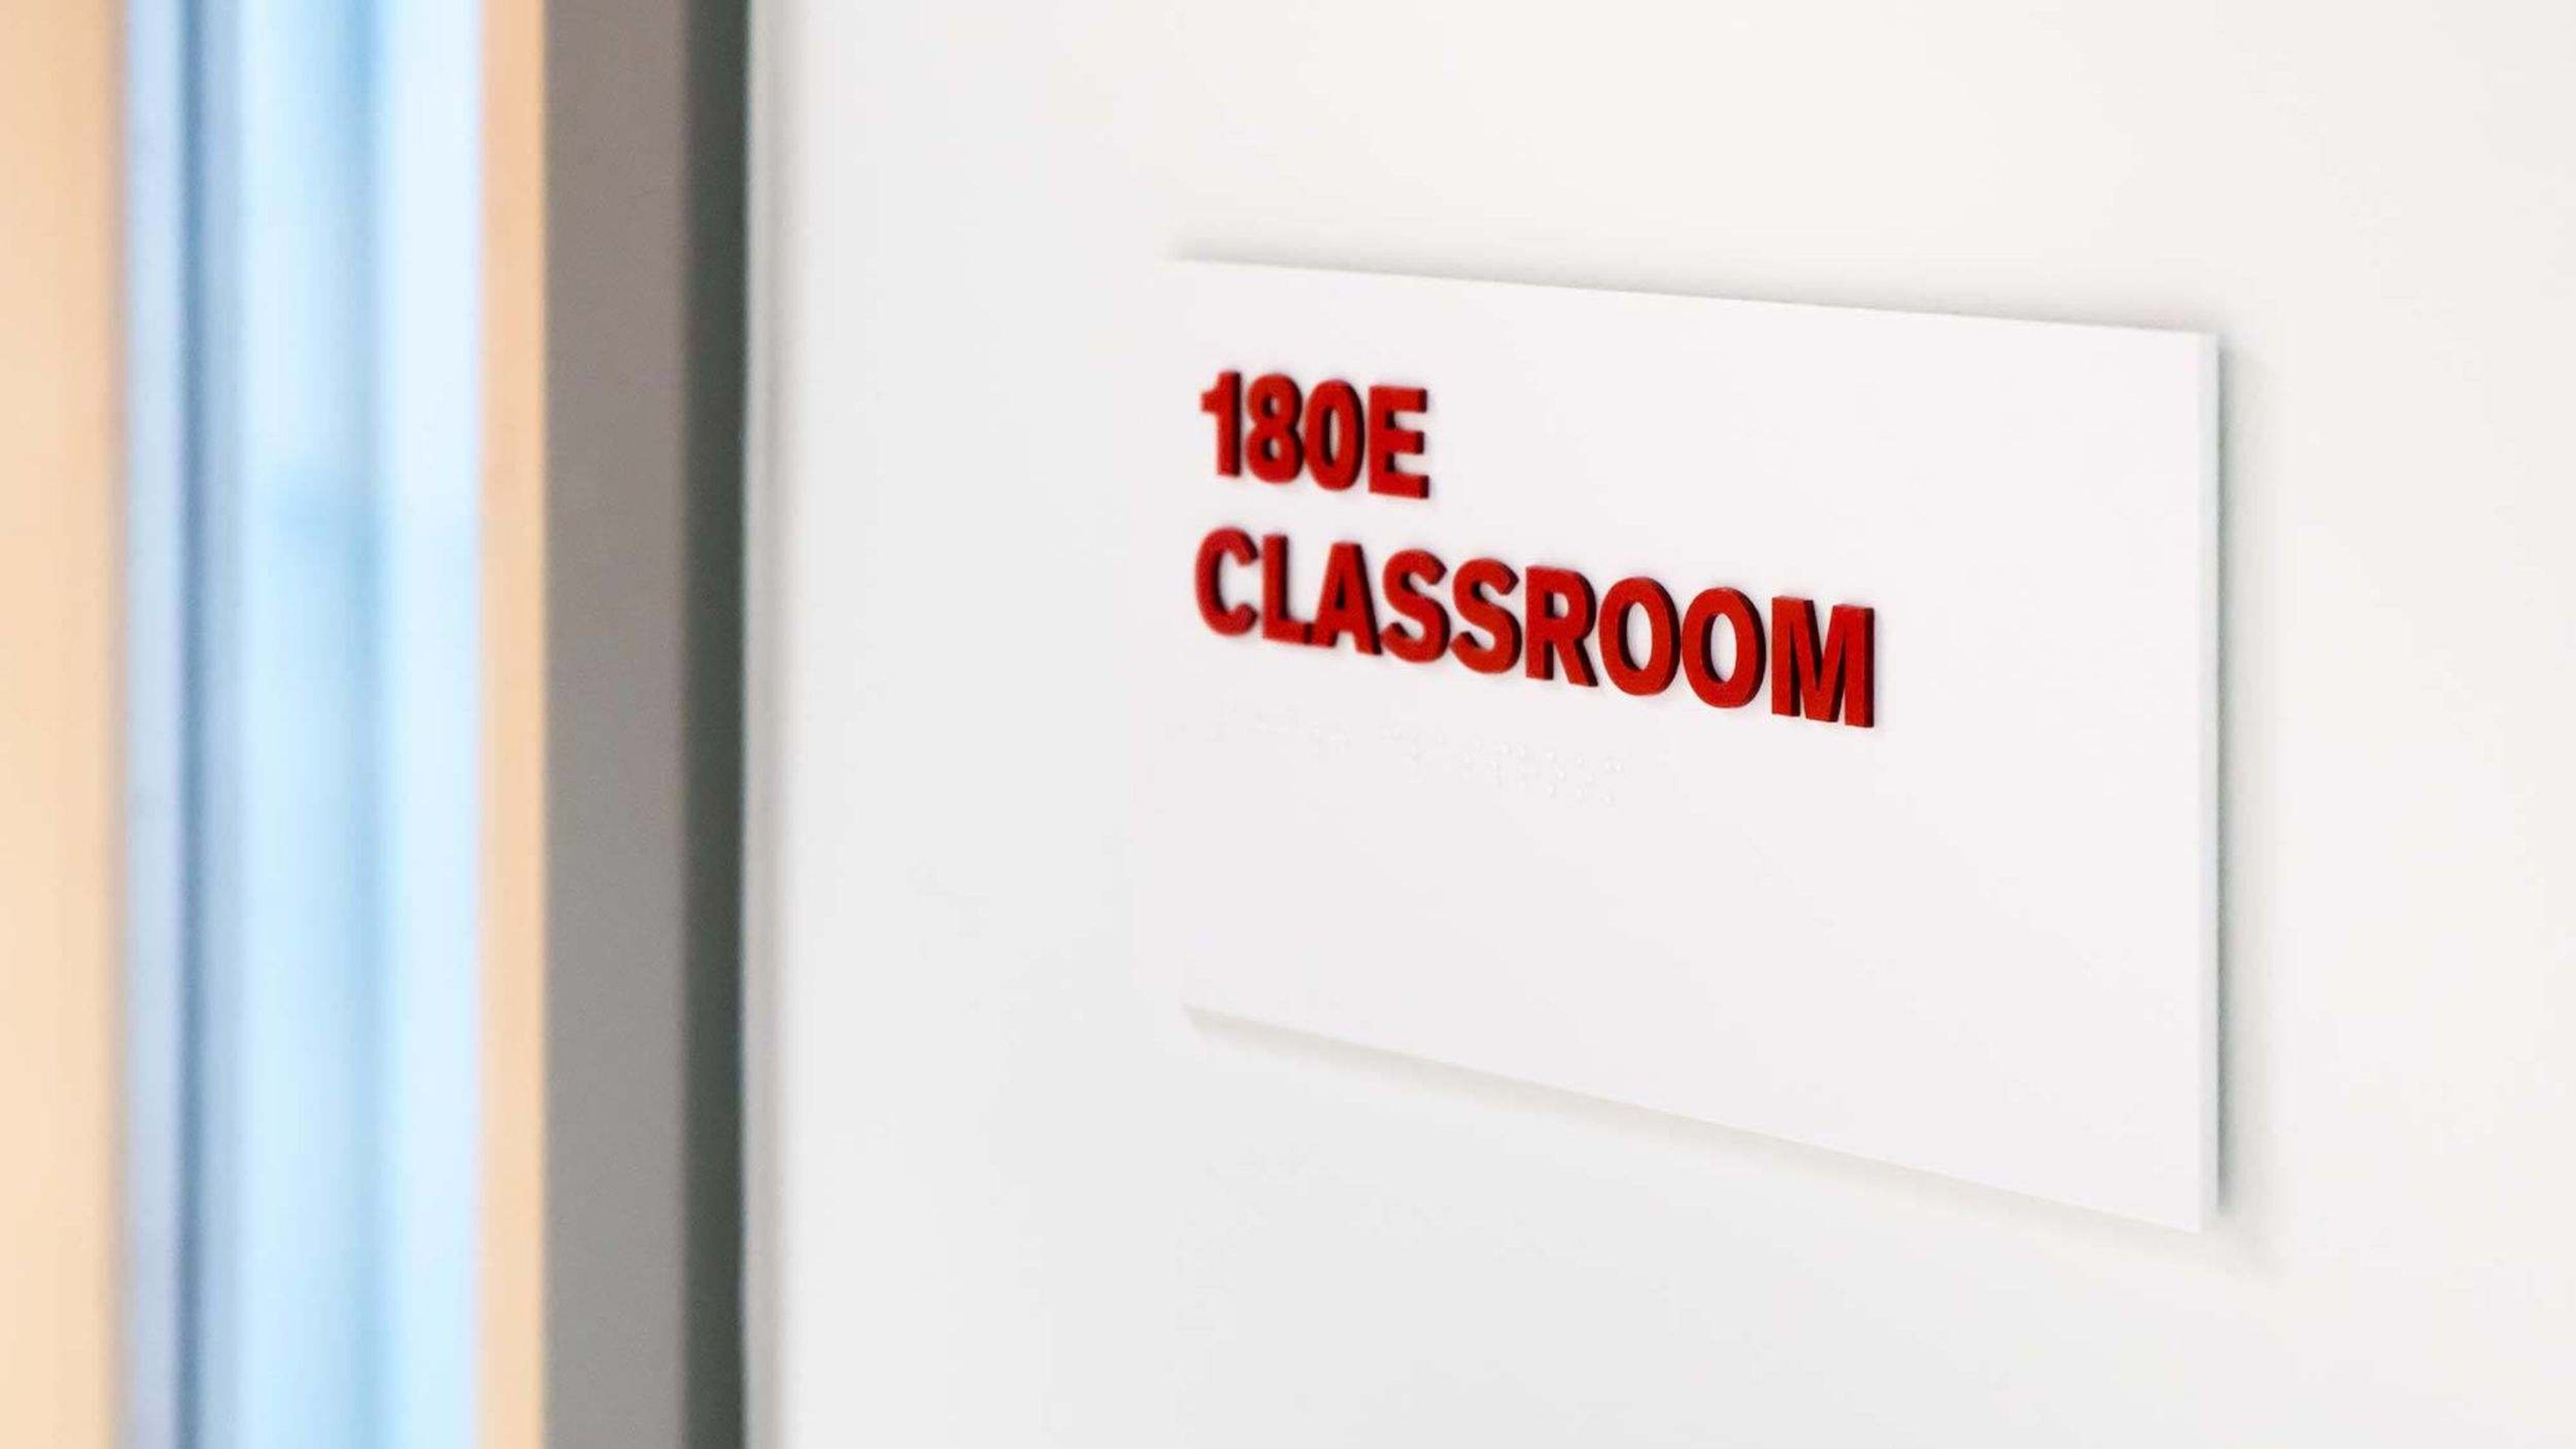 UIC Signage System Room Identification Application